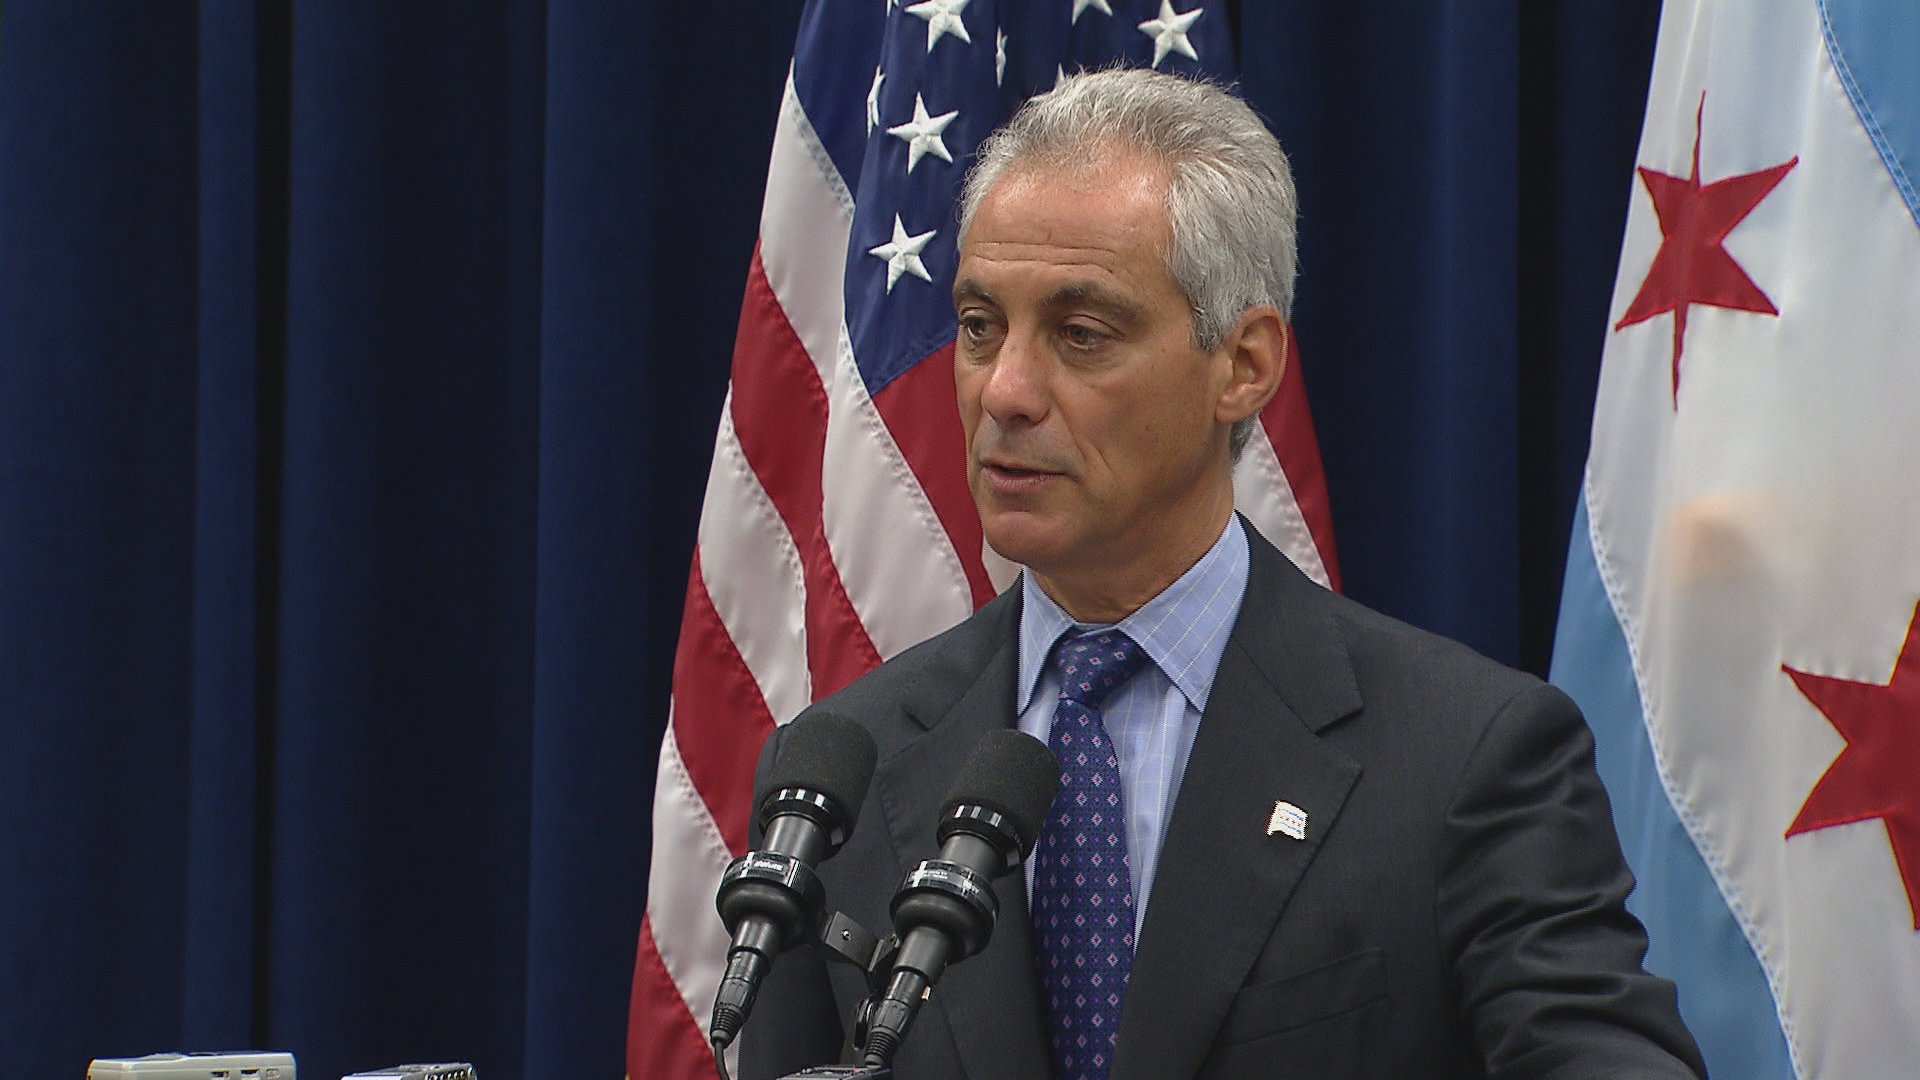 "The Property Tax Rebate Program is designed to alleviate the financial burden for low-income and senior homeowners in Chicago. In a press release, Mayor Rahm Emanuel said the effort is ""an important program for the city and provides hardworking homeowners some property tax relief."" (Chicago Tonight)"